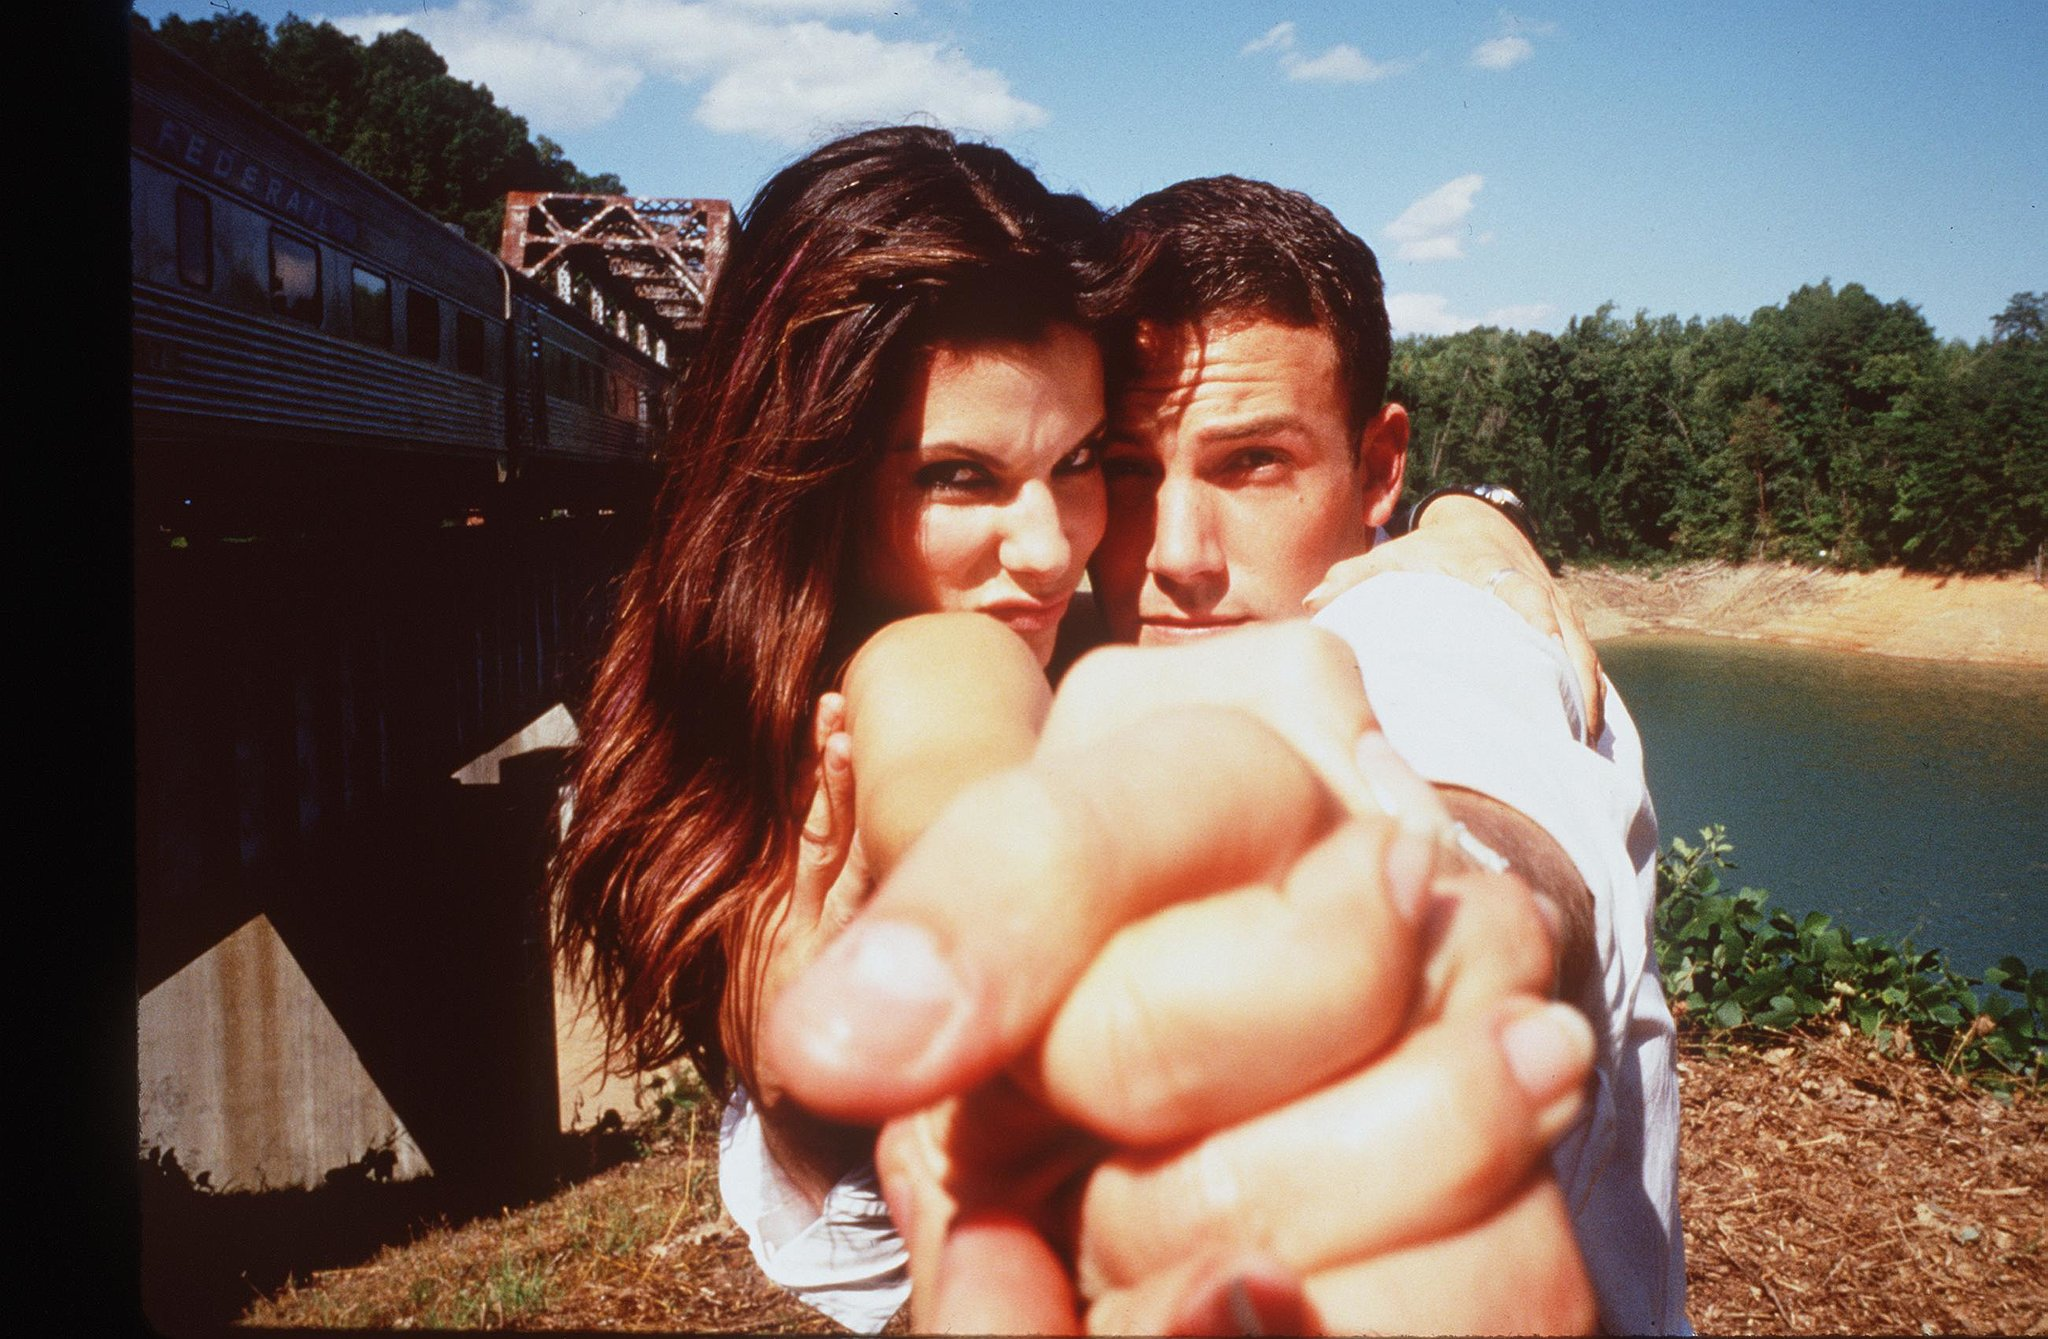 She and Ben Affleck got goofy in front of the cameras while shooting Forces of Nature in 1999.